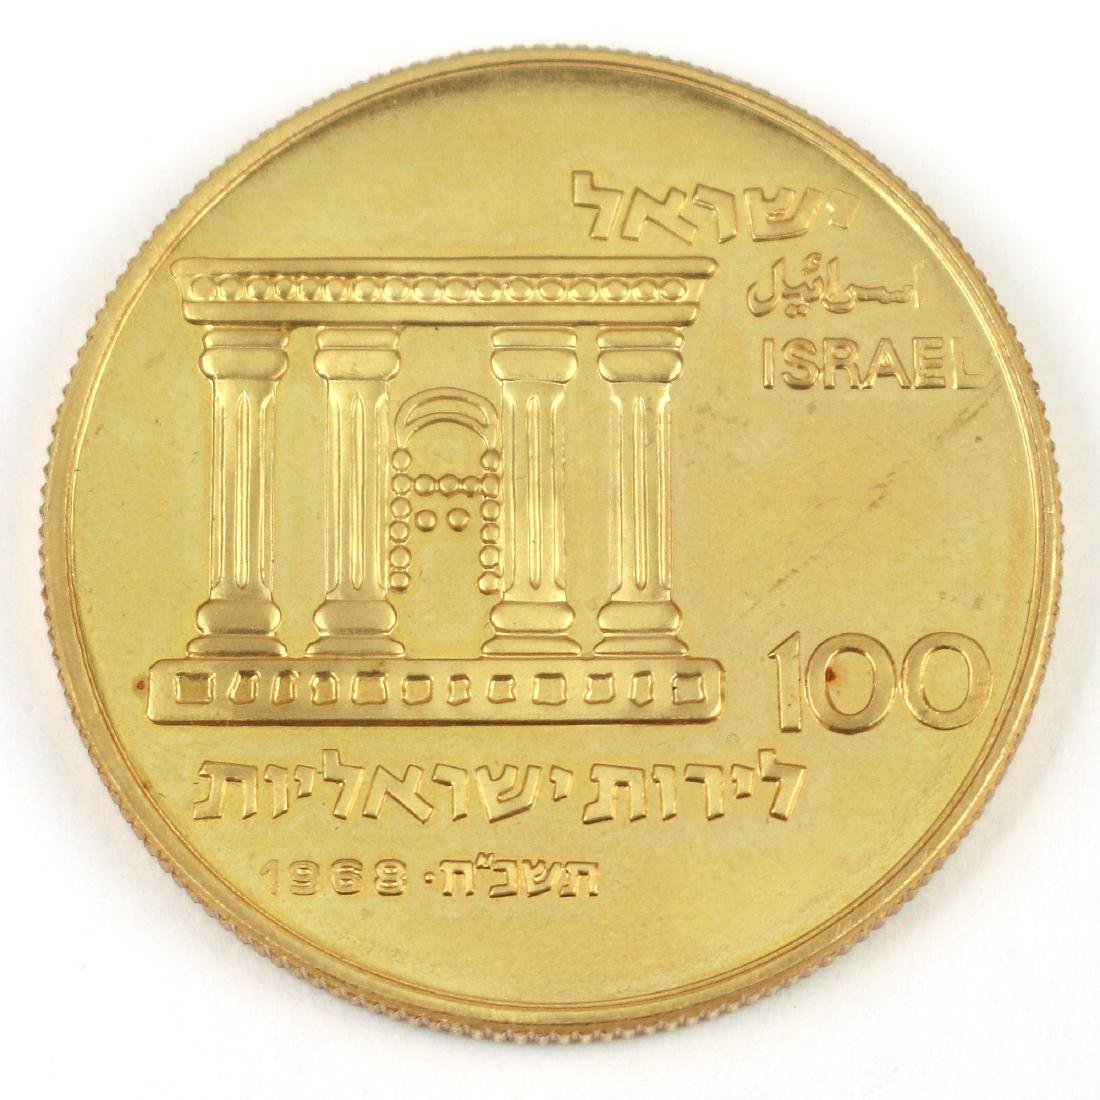 JERUSALEM GOLD COIN